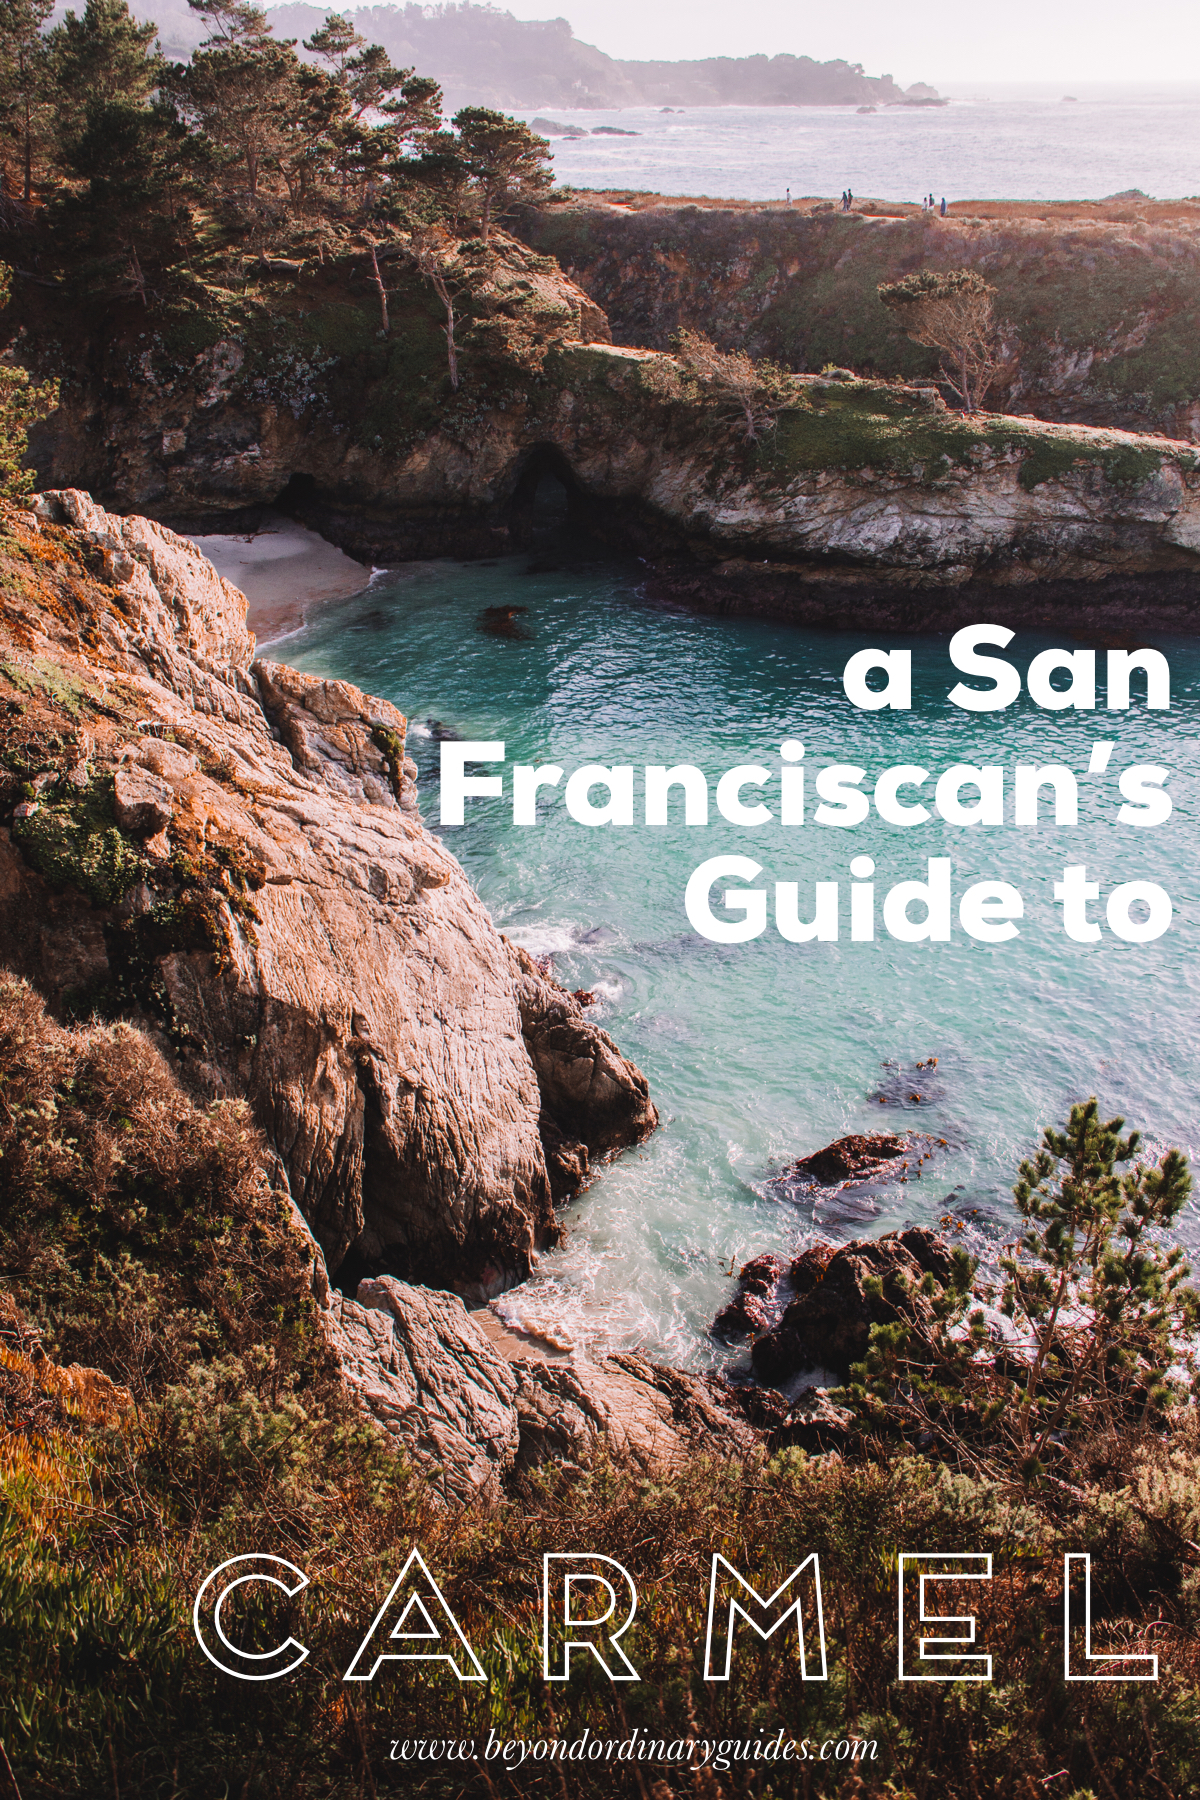 a San Franciscan's Guide to Carmel, CA